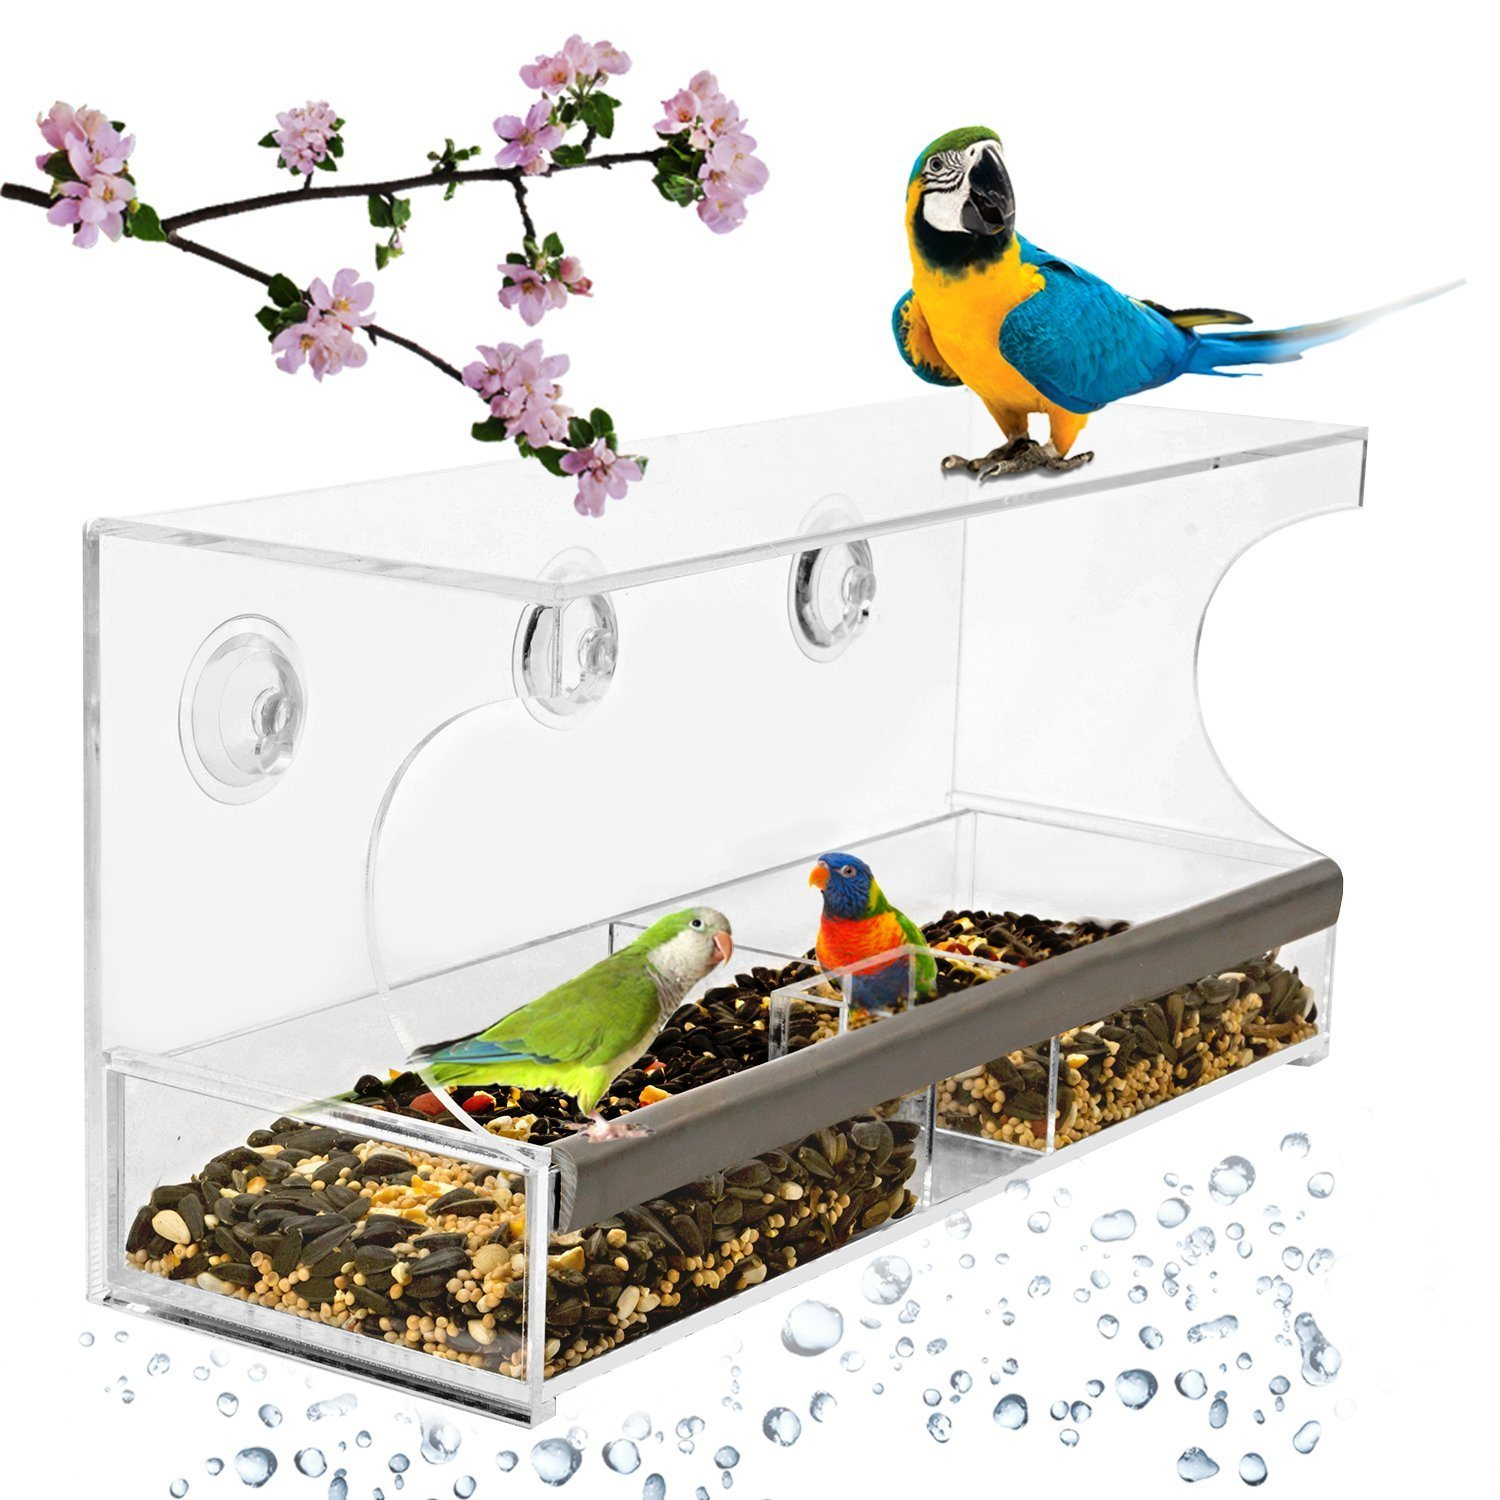 Acrylic Large Window Bird Feeder with Removable Tray